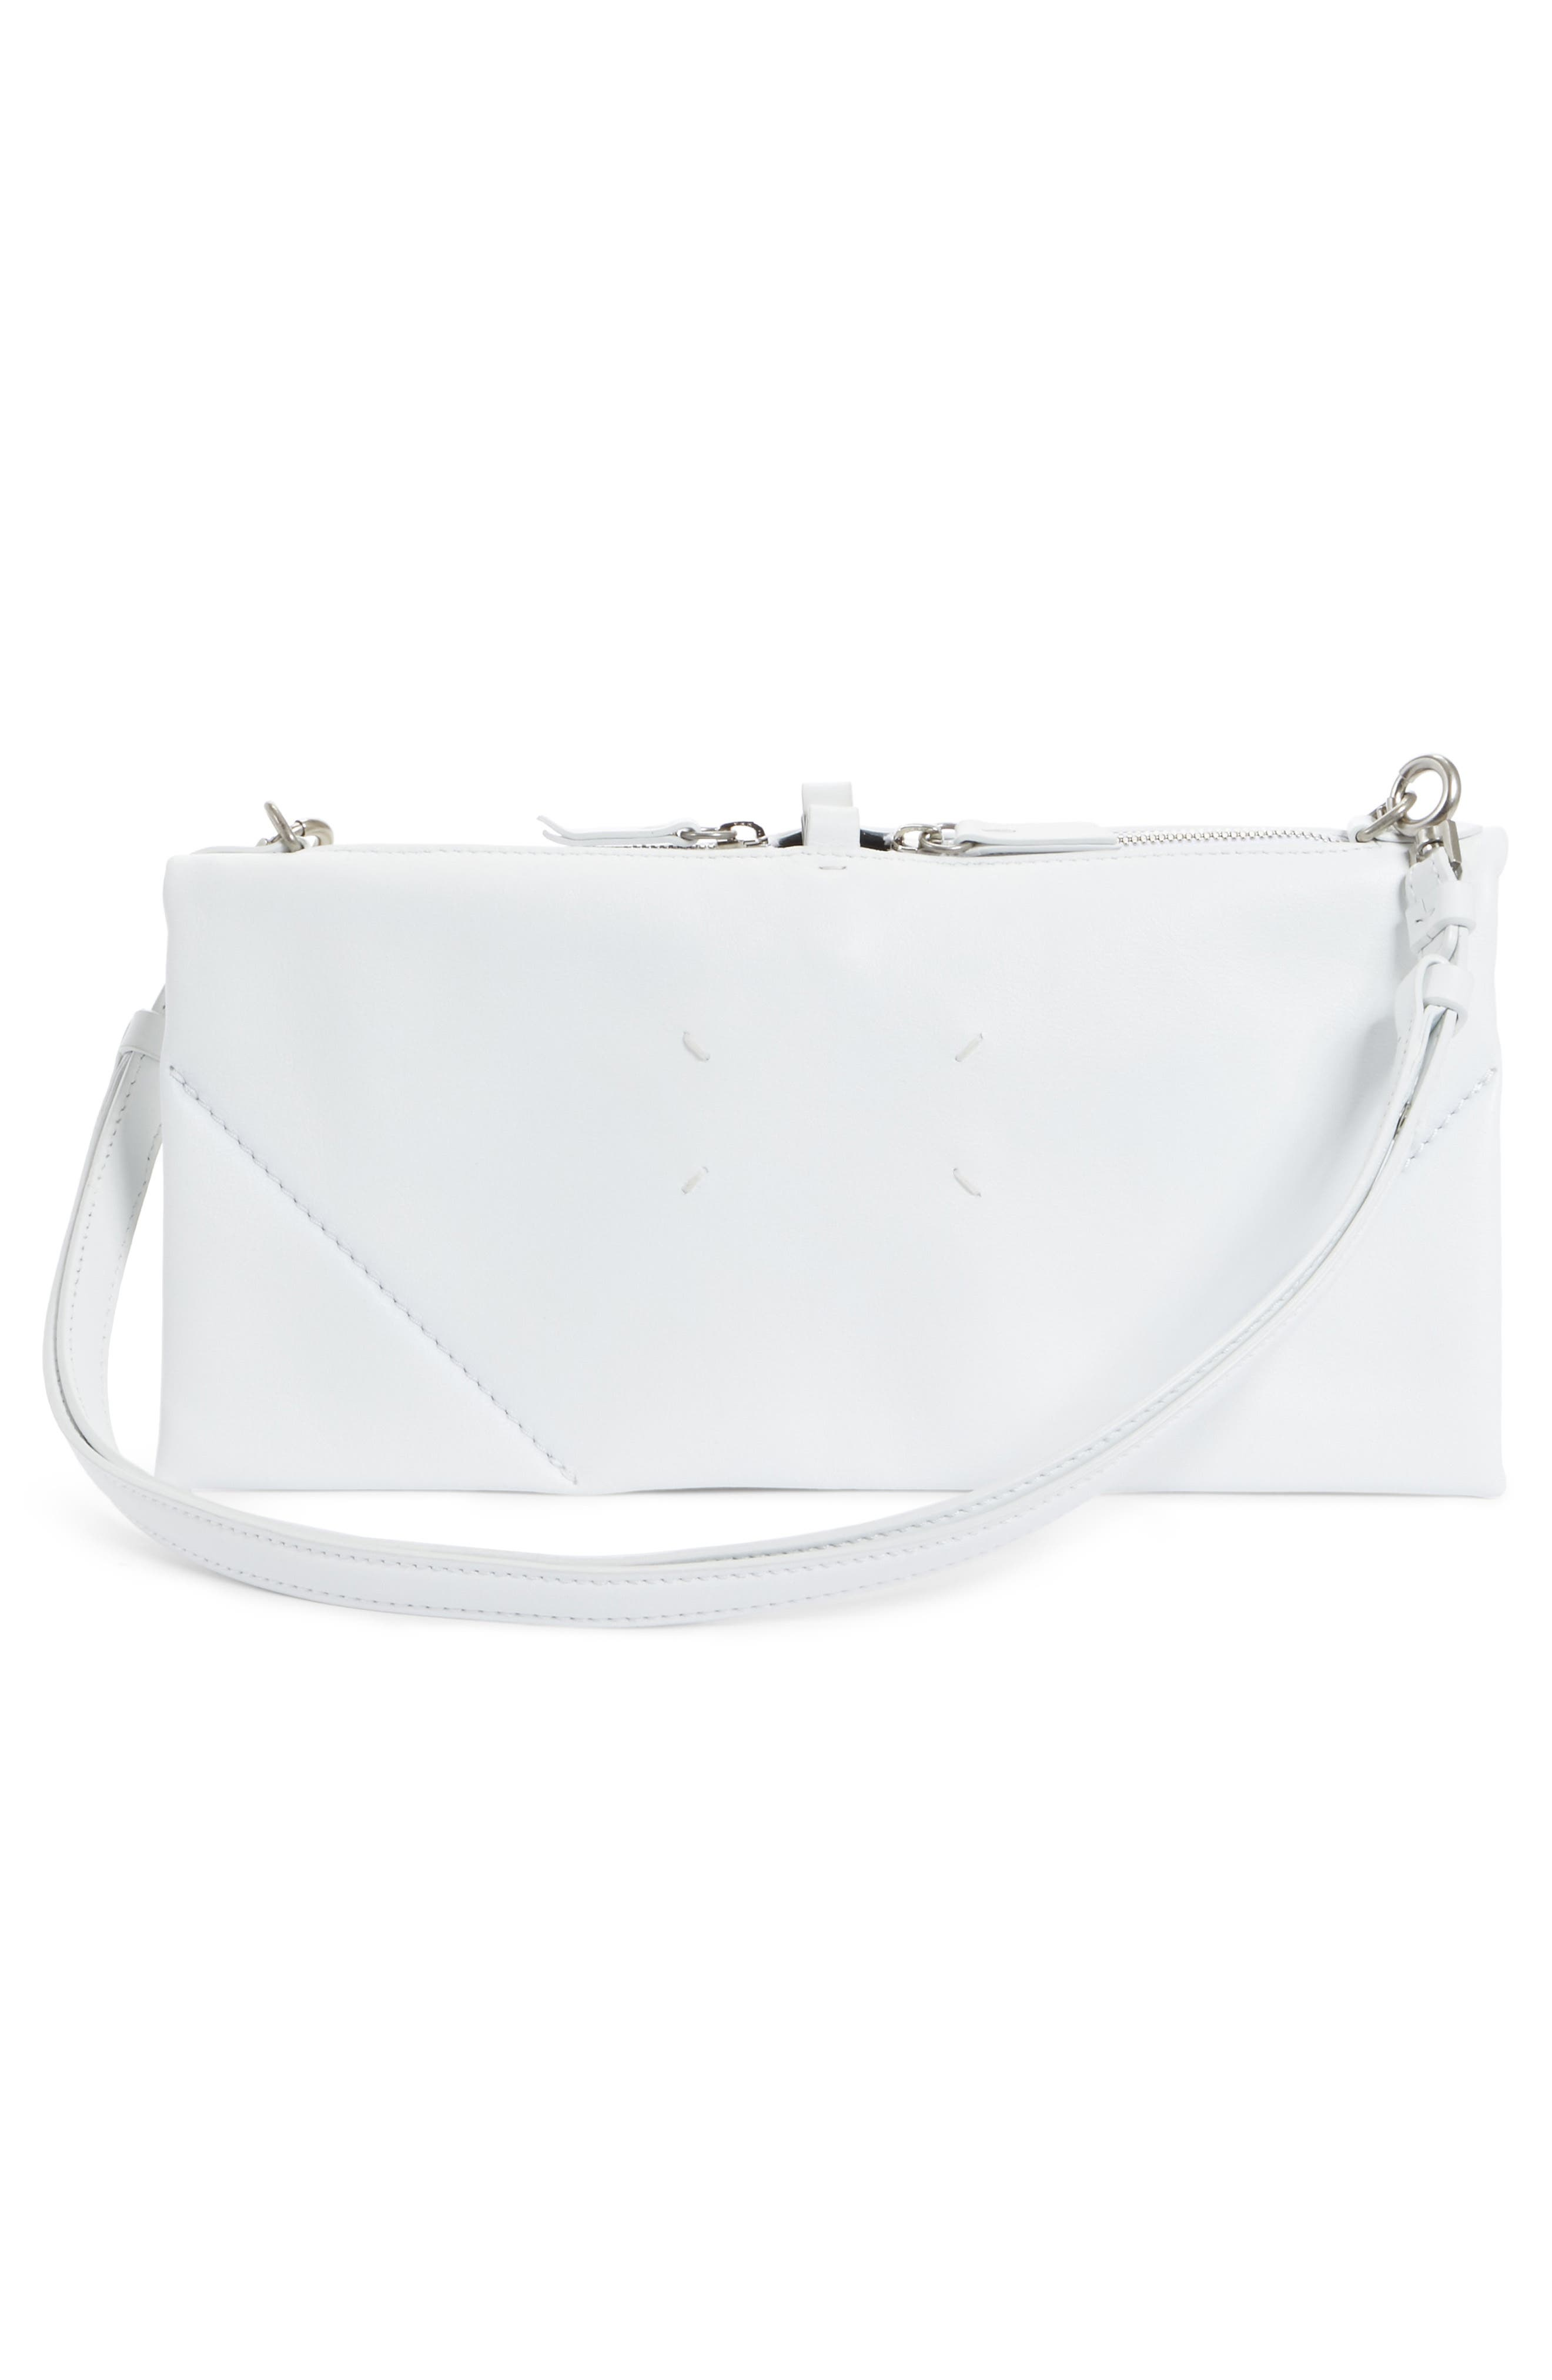 Mini Leather Magic Collapsible Bag,                             Alternate thumbnail 3, color,                             White